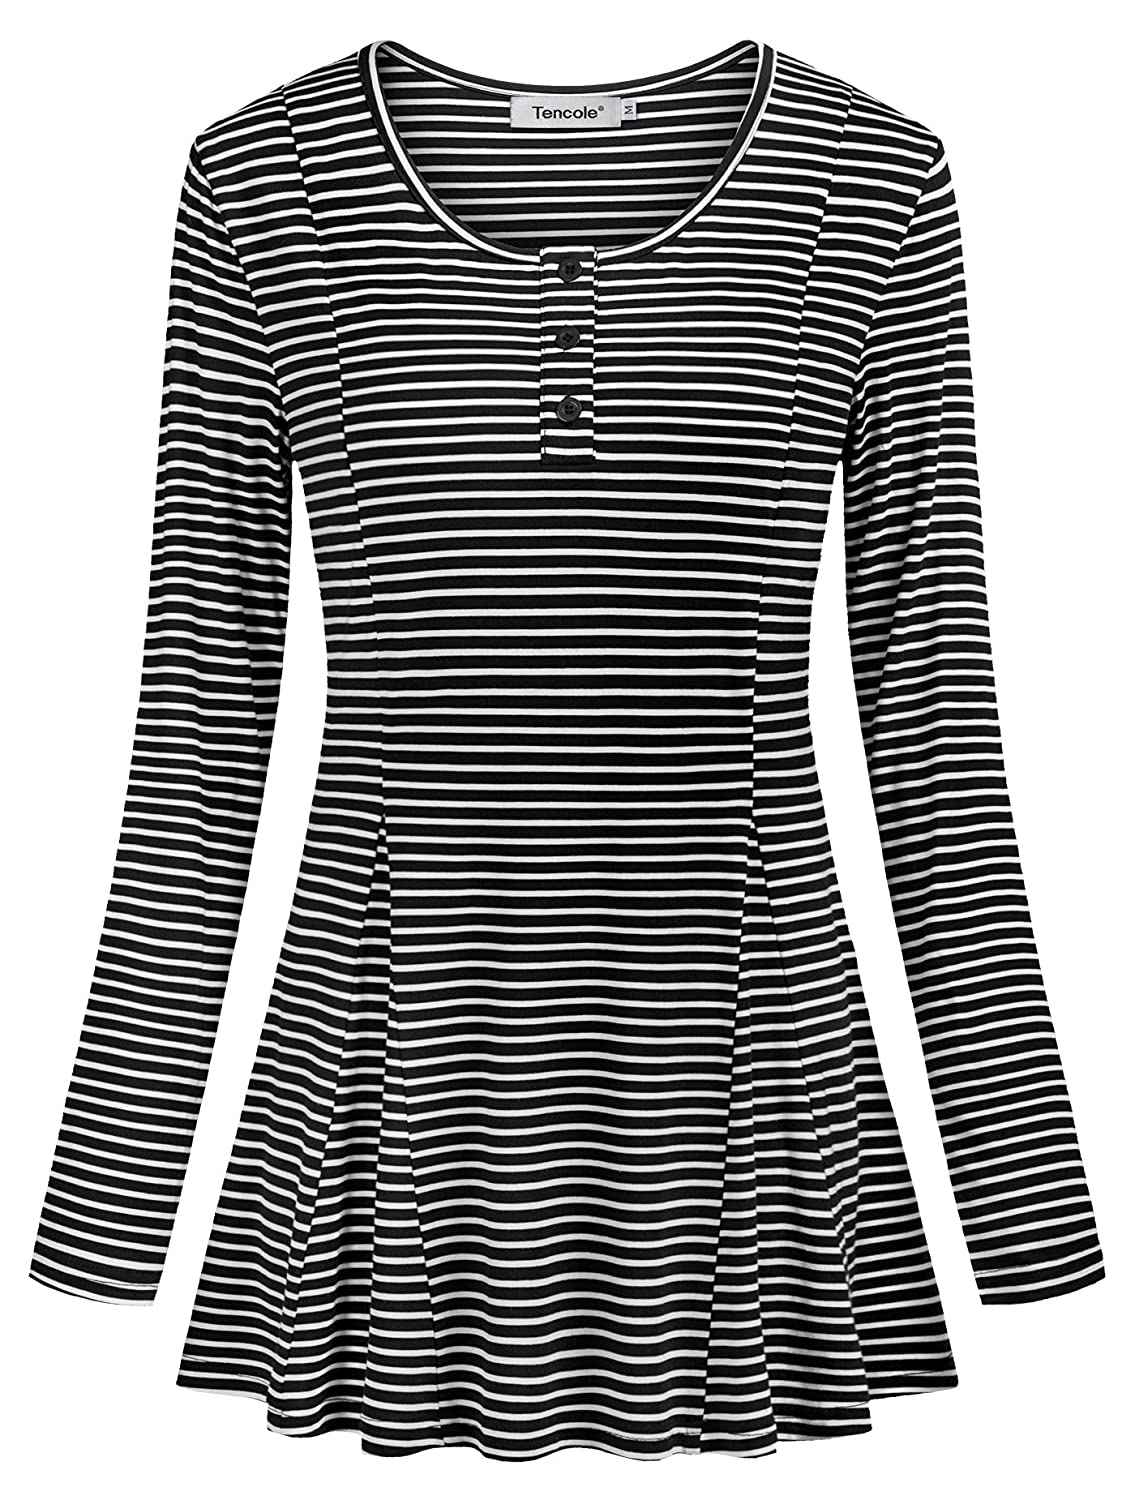 Black Tencole Striped Tops for Women Long Sleeve Casual Round Neck Tunics with Buttons